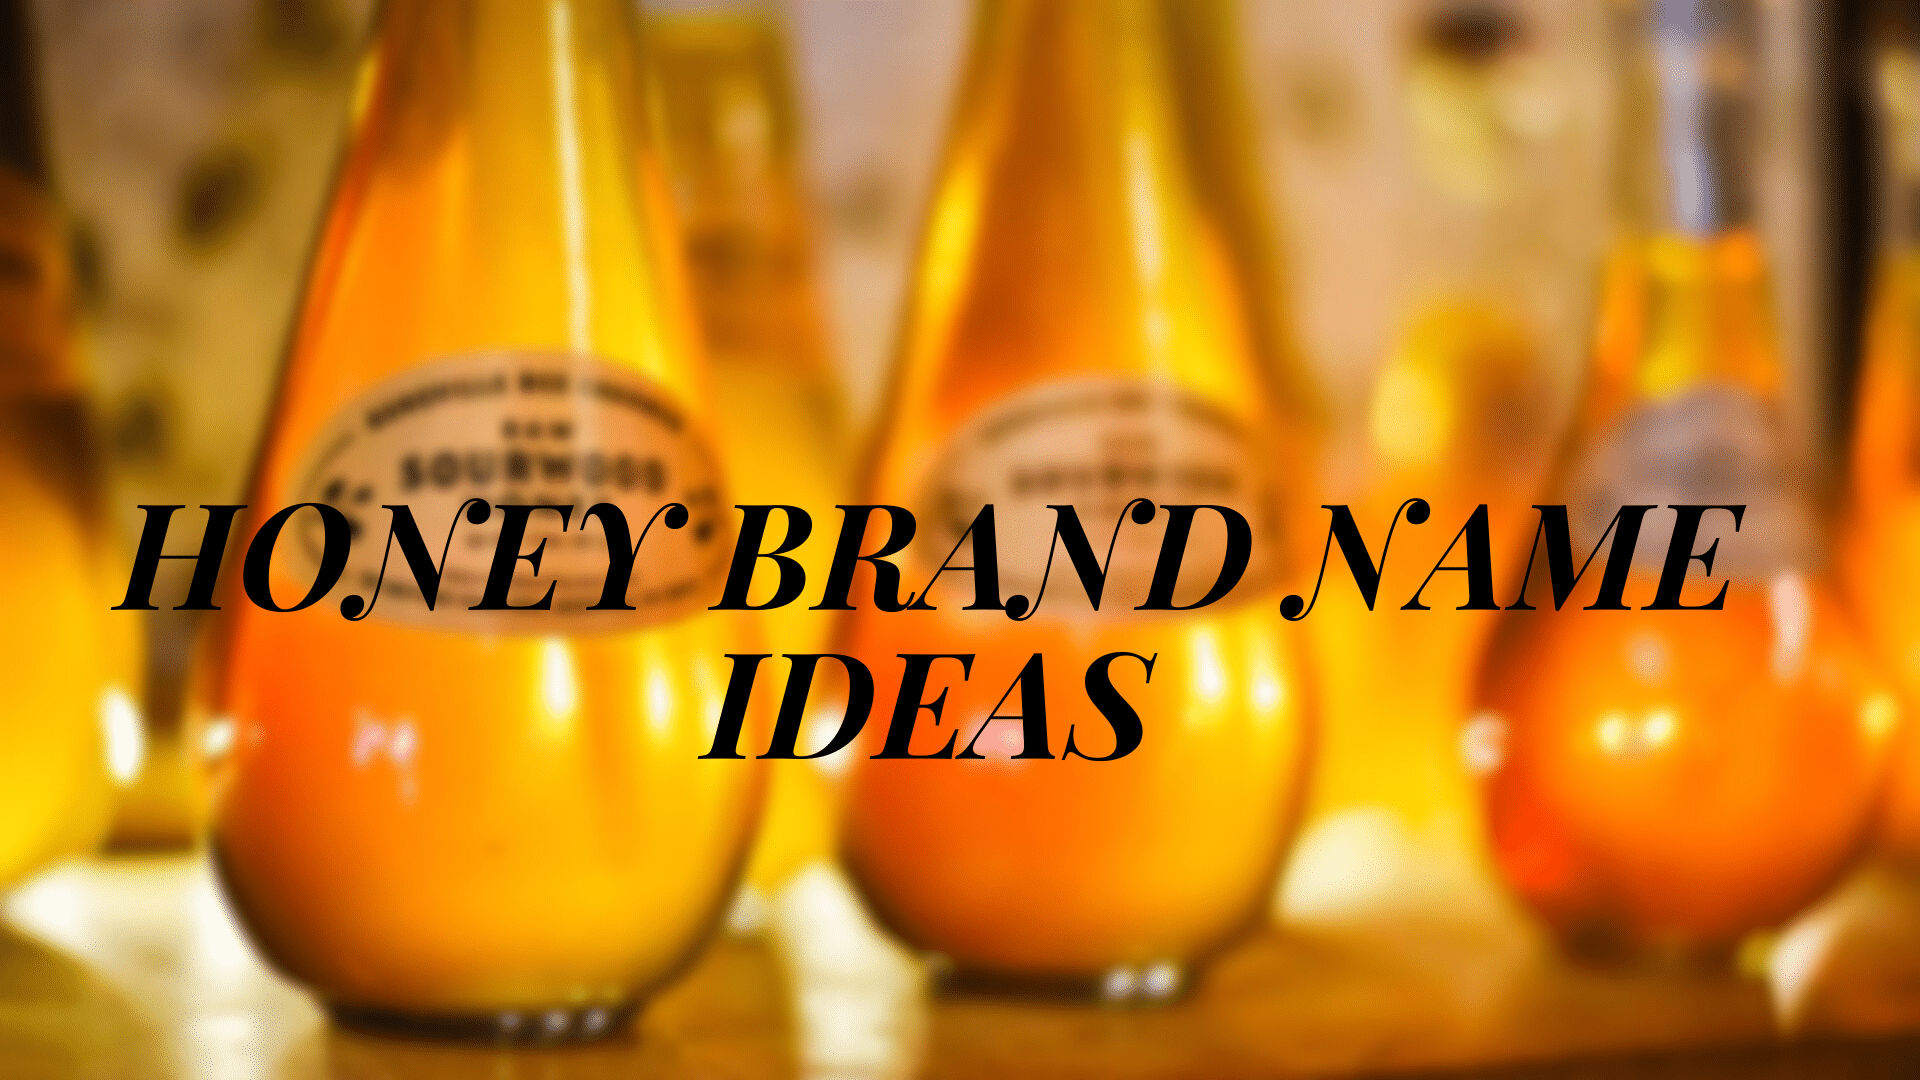 HONEY BRAND NAME IDEAS